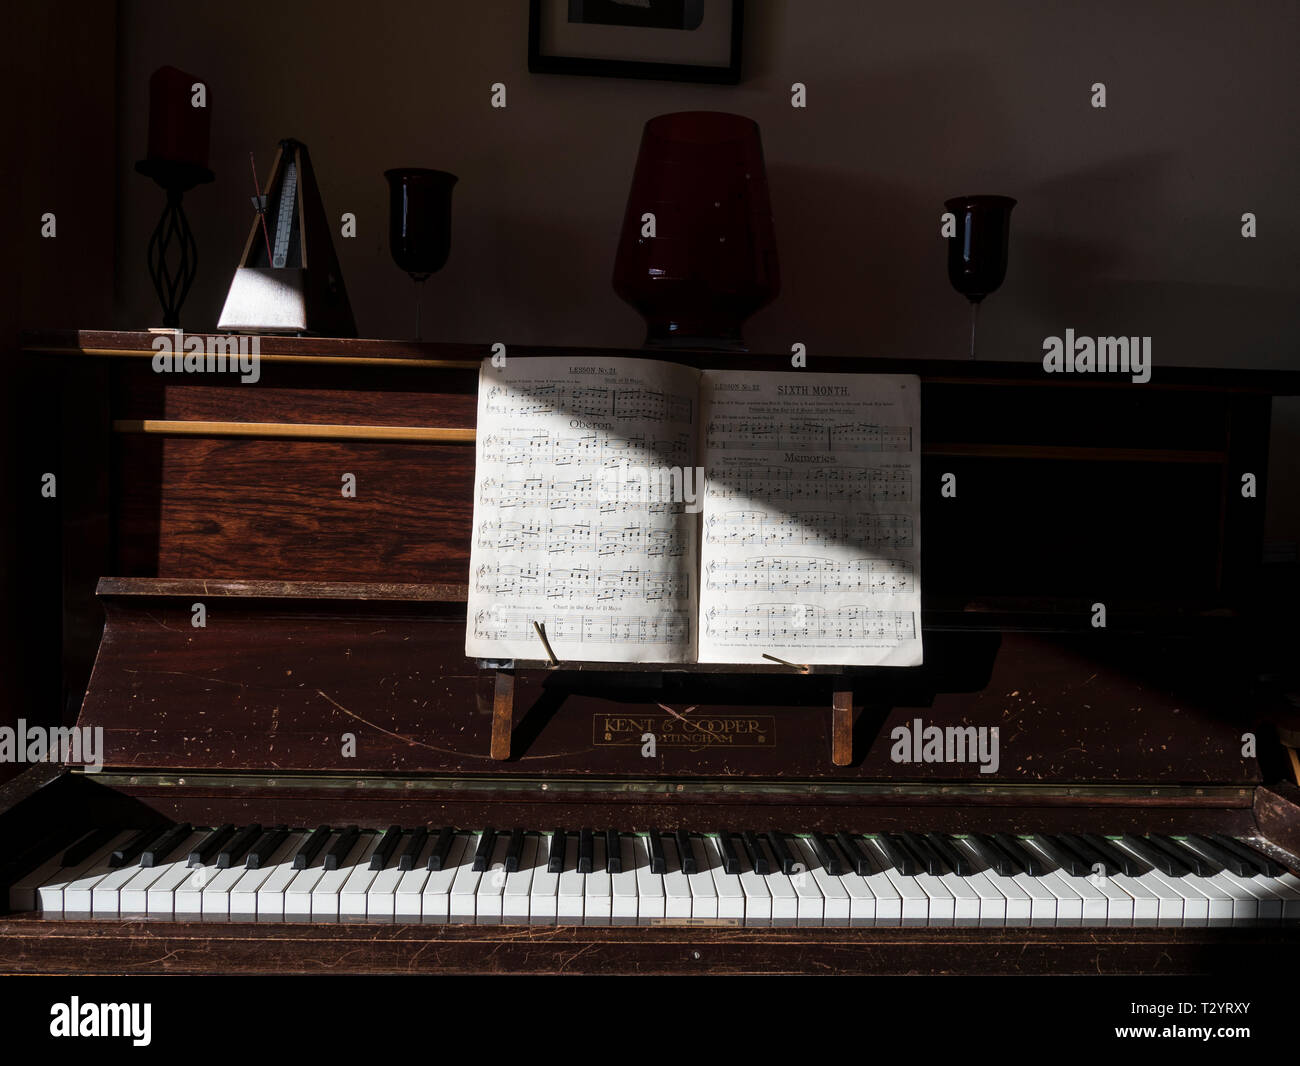 Sun falling across a music book open on an upright piano - Stock Image